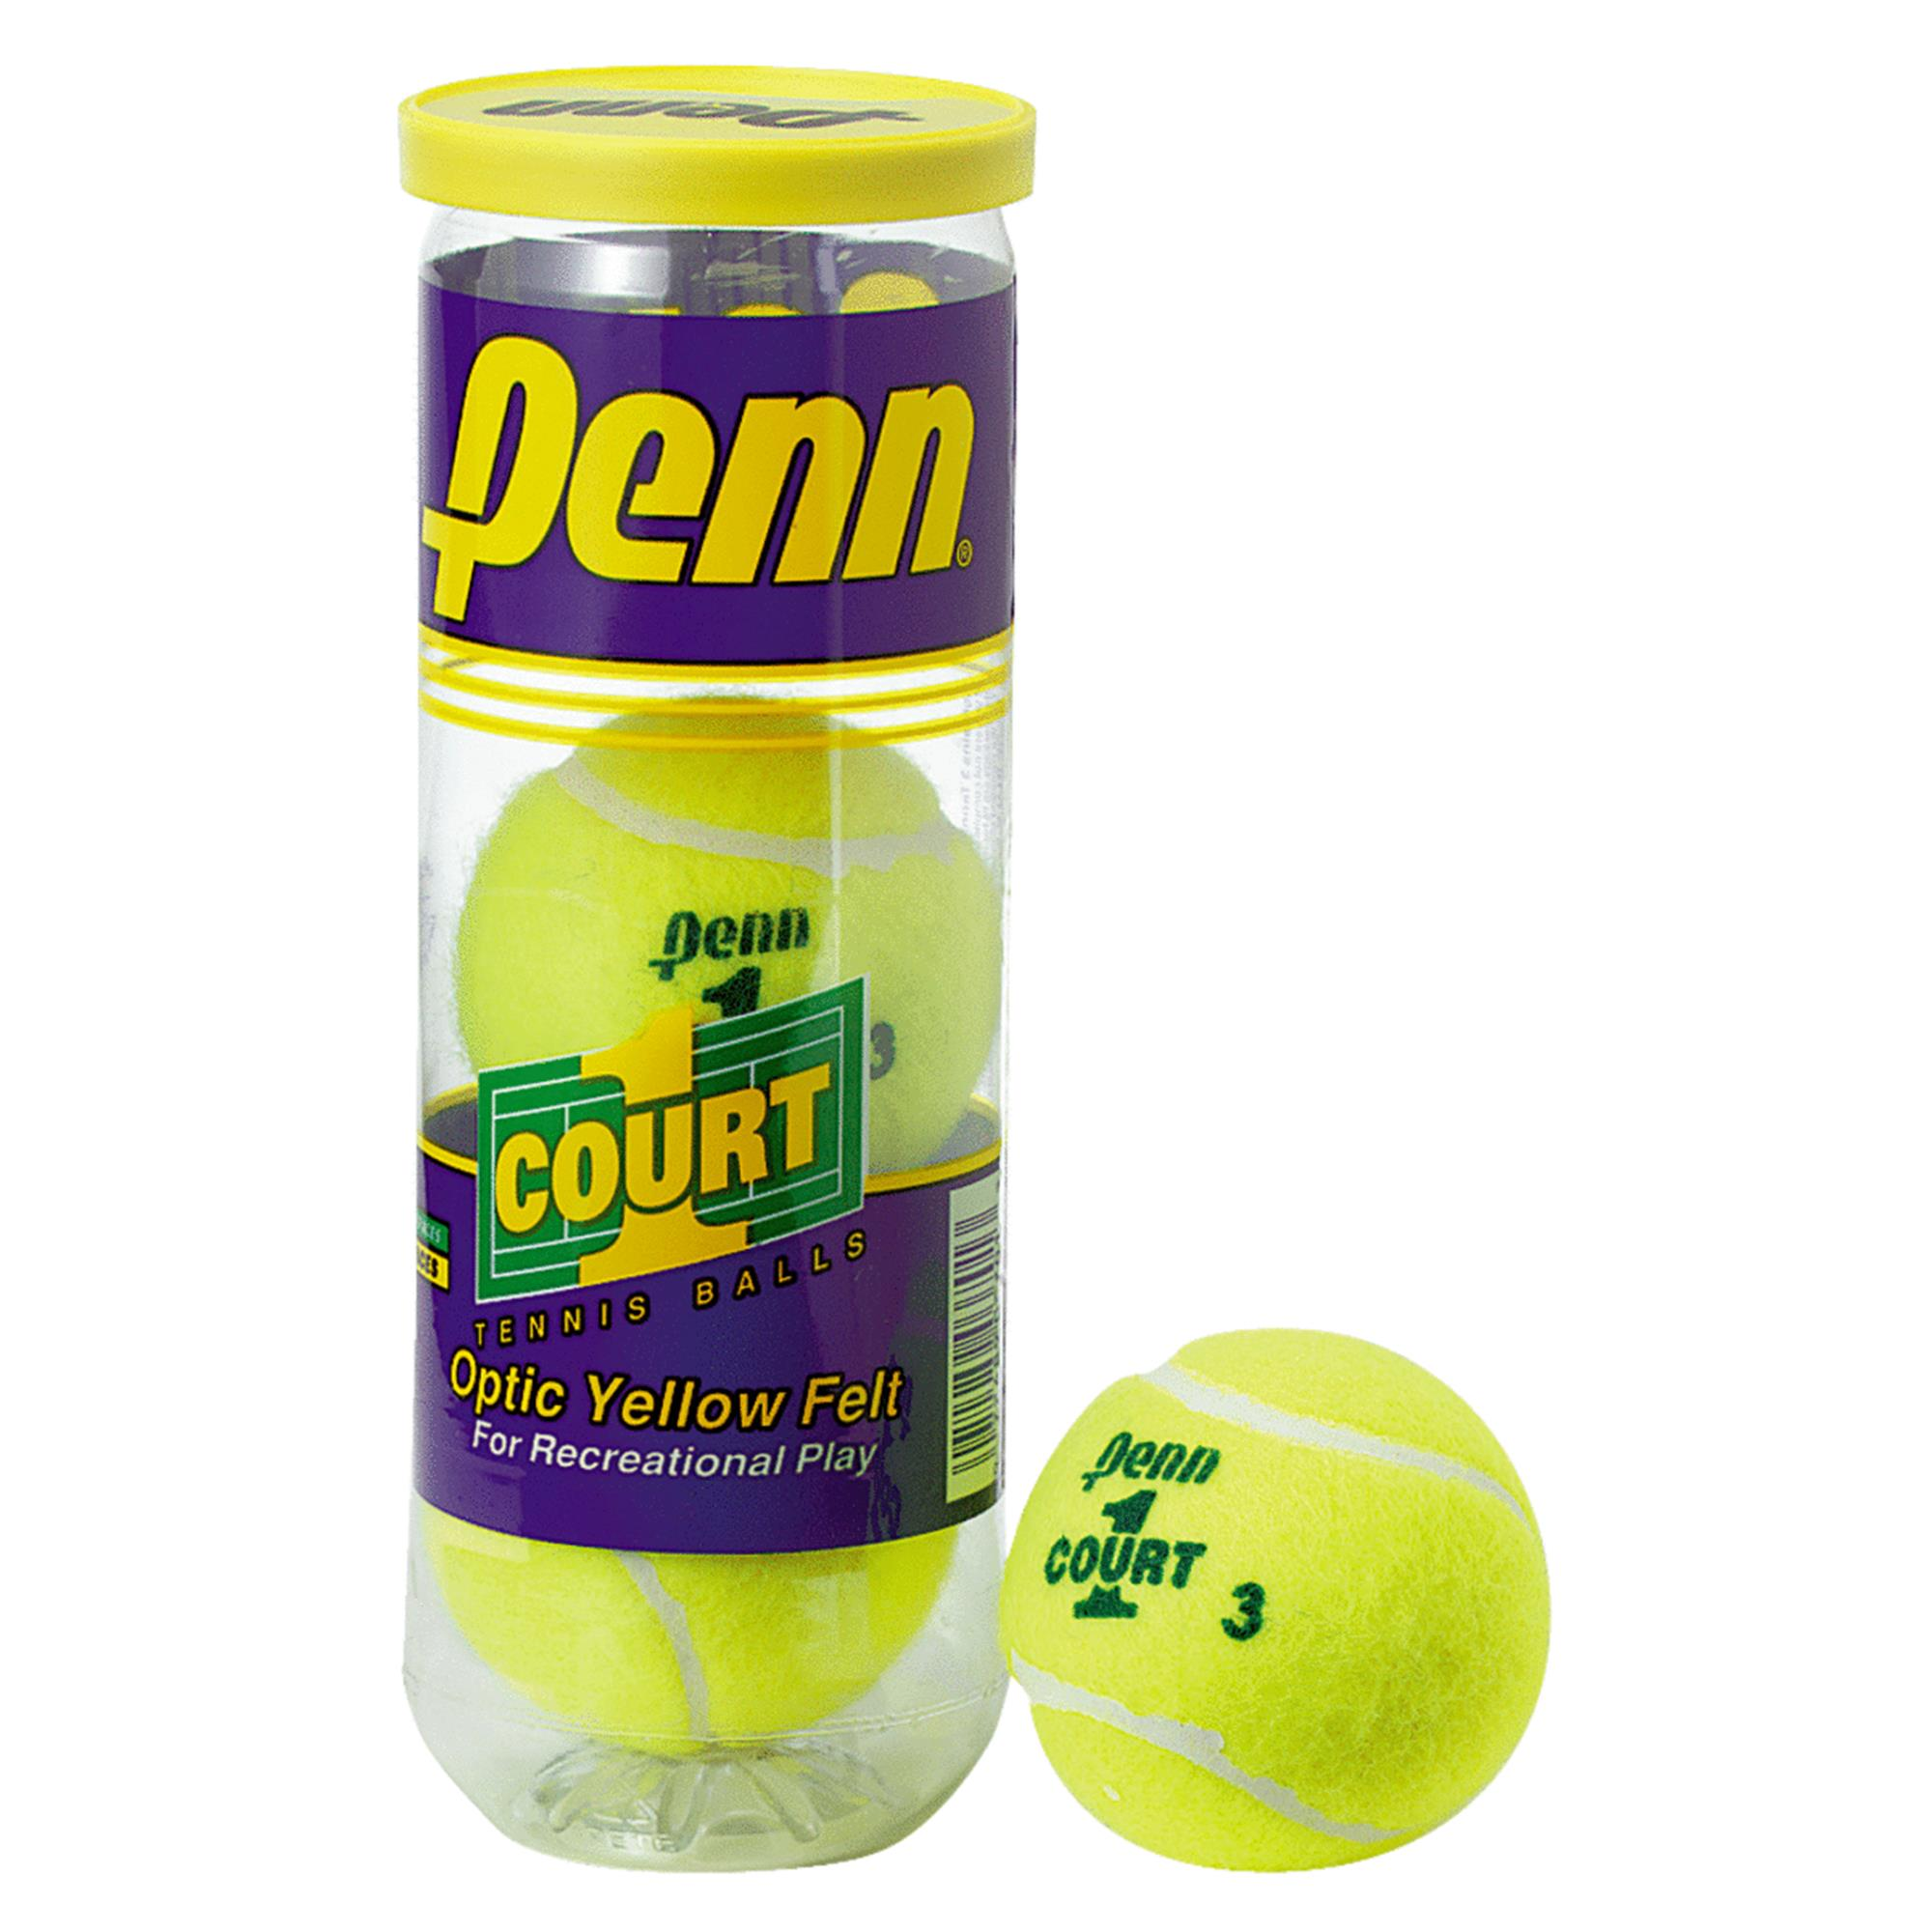 Penn 523701 Court One Tennis Ball (3 Ball Can)